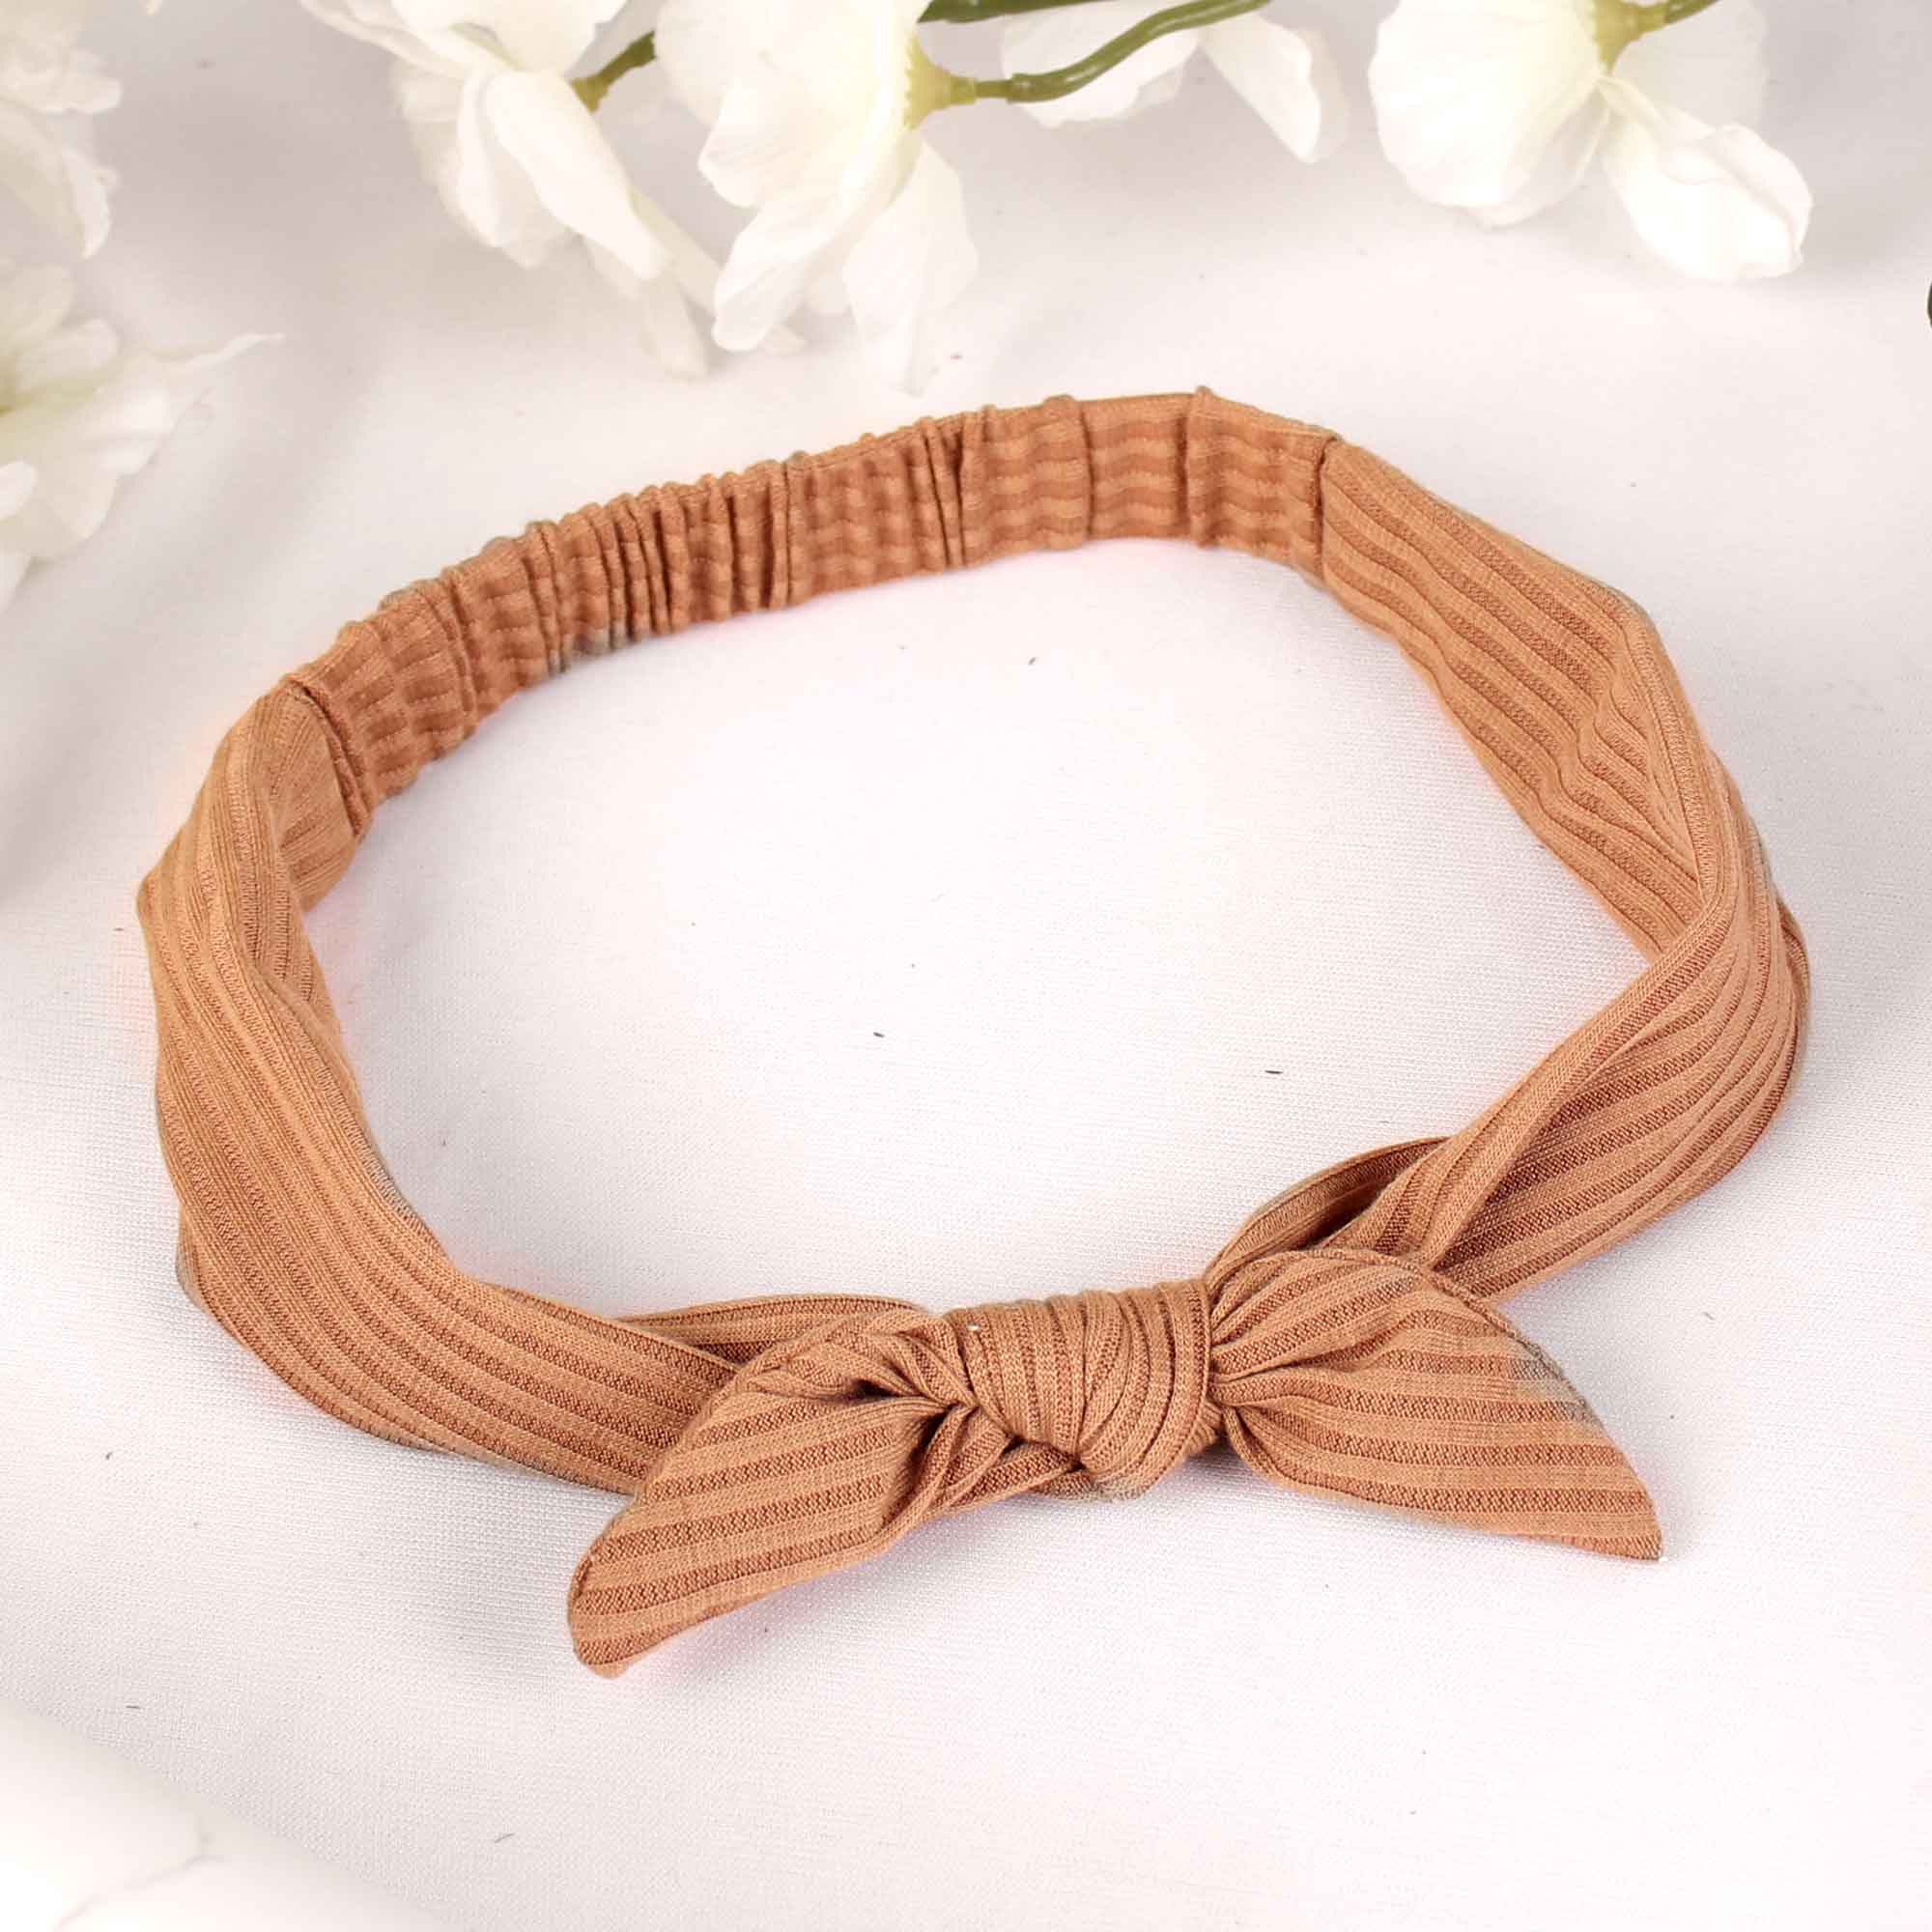 HairBand,The Mermaid's Fabric Hairband in Brown - Cippele Multi Store